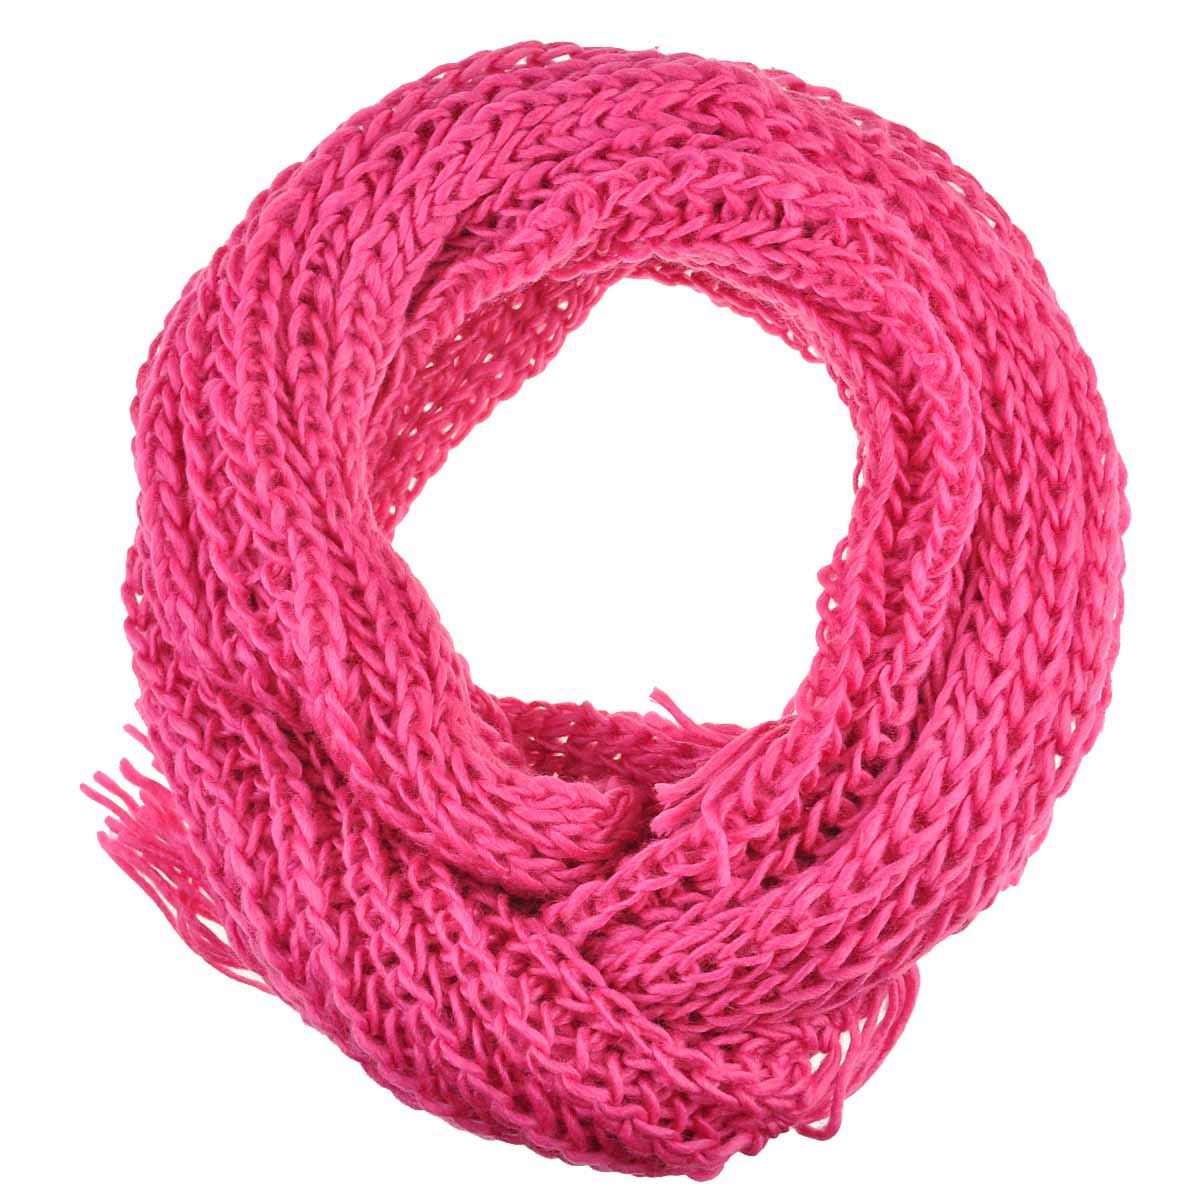 Knitting Chunky Scarves : Women plain knit scarf chunky knitted autumn winter warm